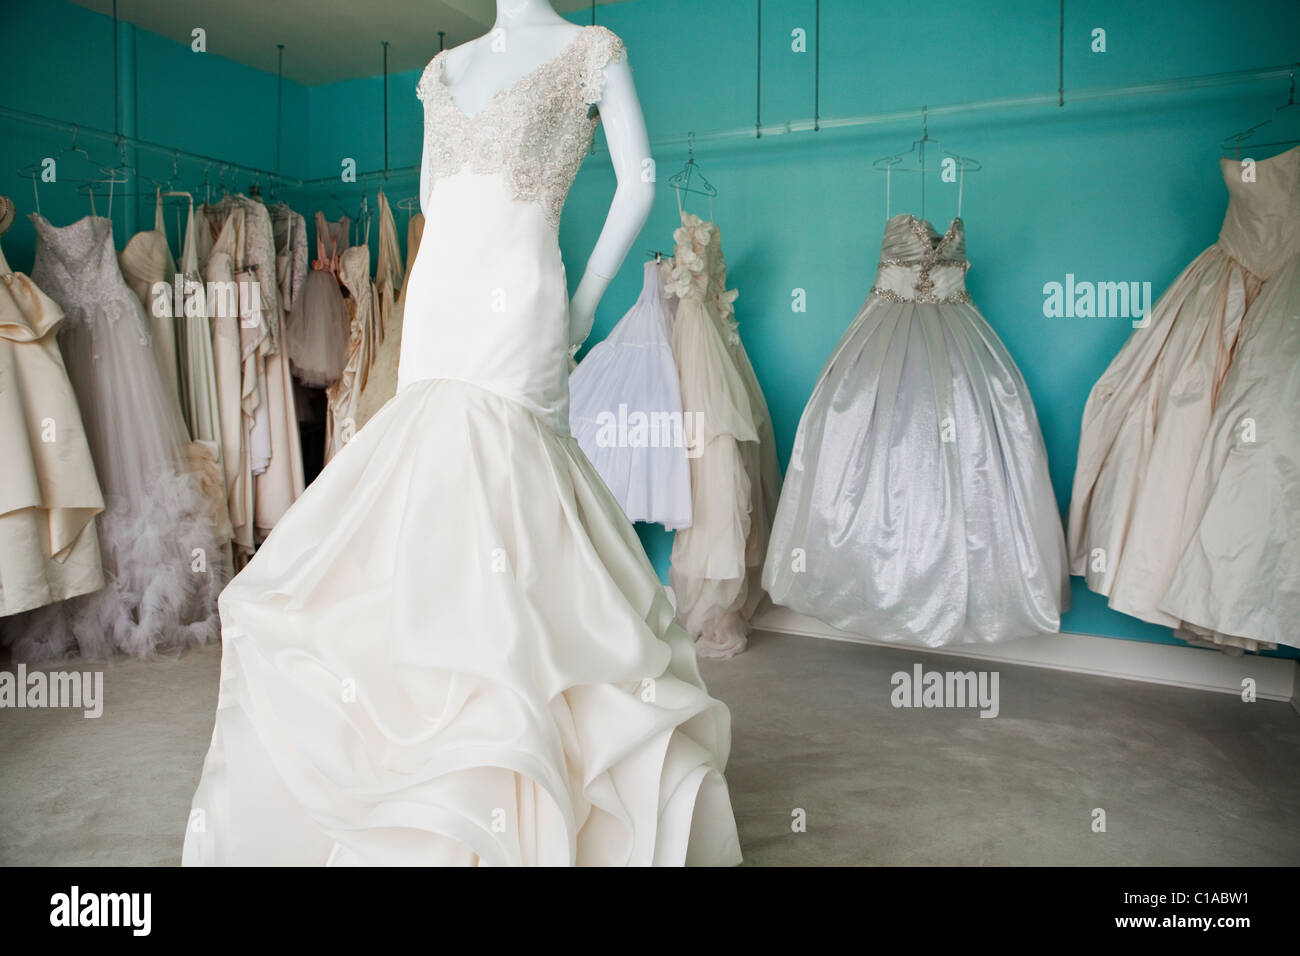 White Dresses Imágenes De Stock & White Dresses Fotos De Stock - Alamy